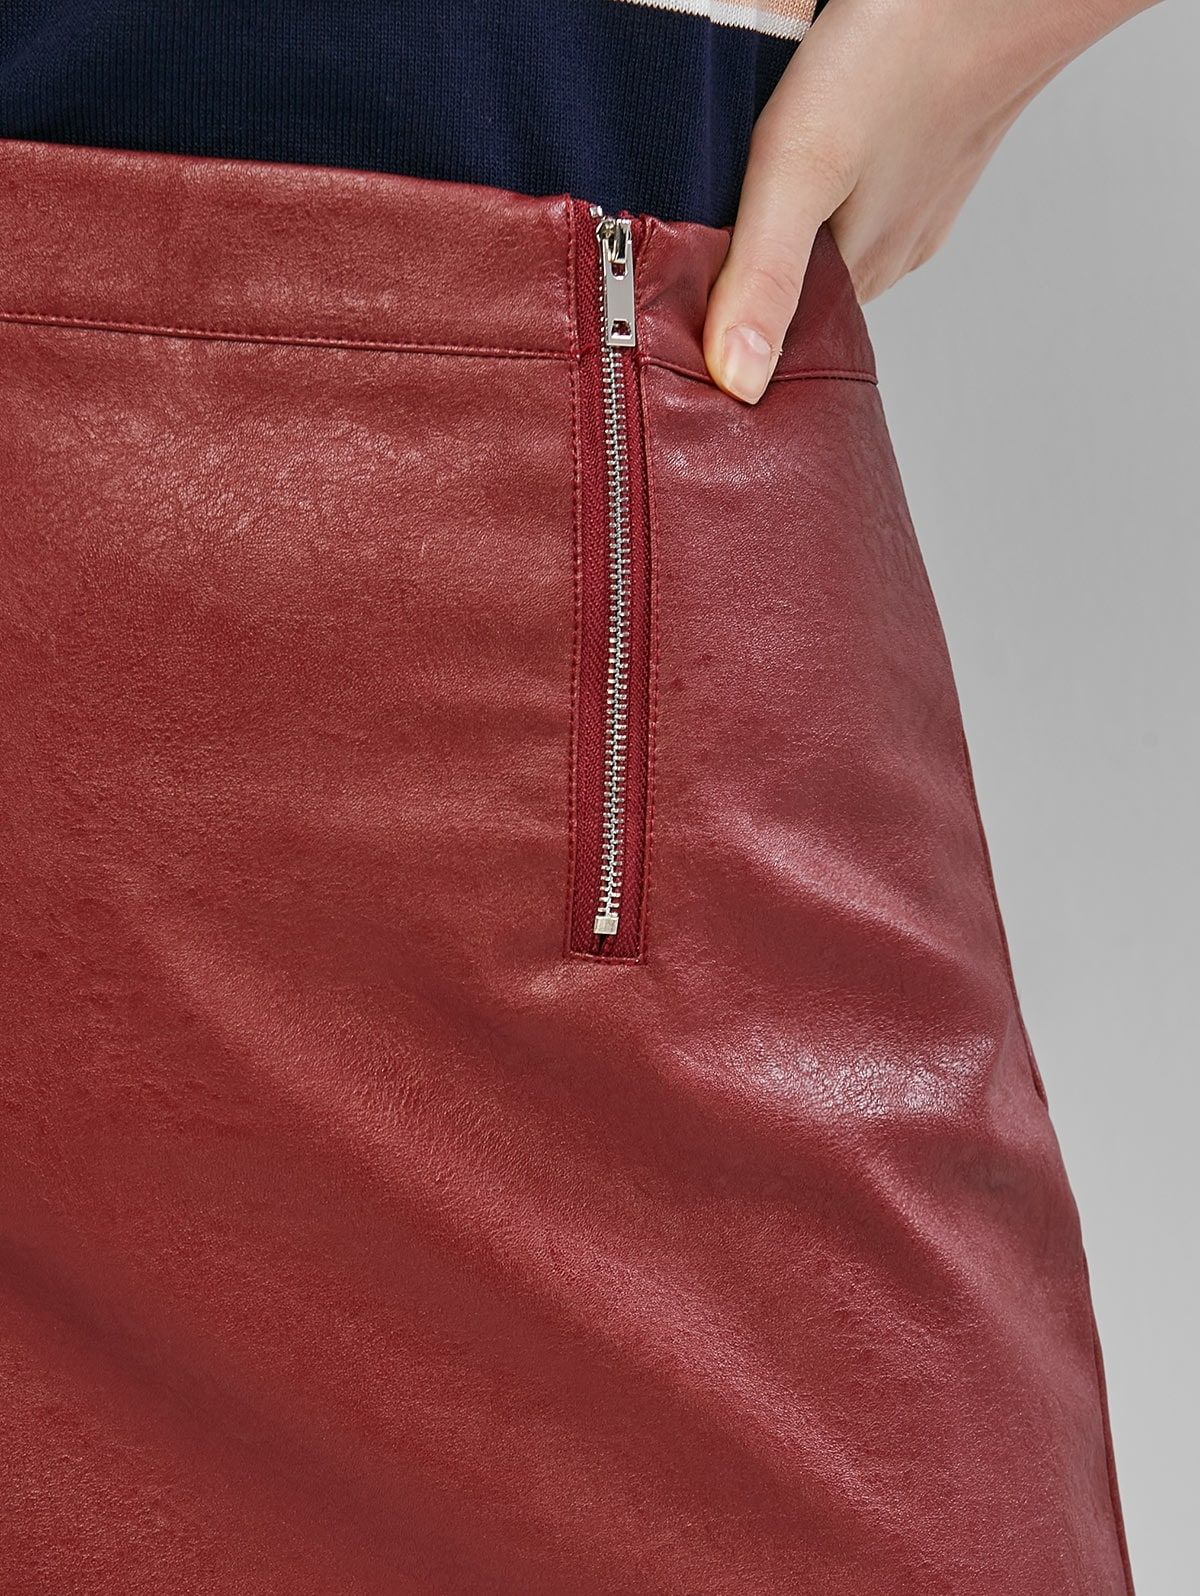 Dual Zip Faux Leather Skirt Red Wine Sponsored Faux Zip Dual Leather Wine Ad In 2020 Faux Leather Skirt Leather Skirt Faux Leather